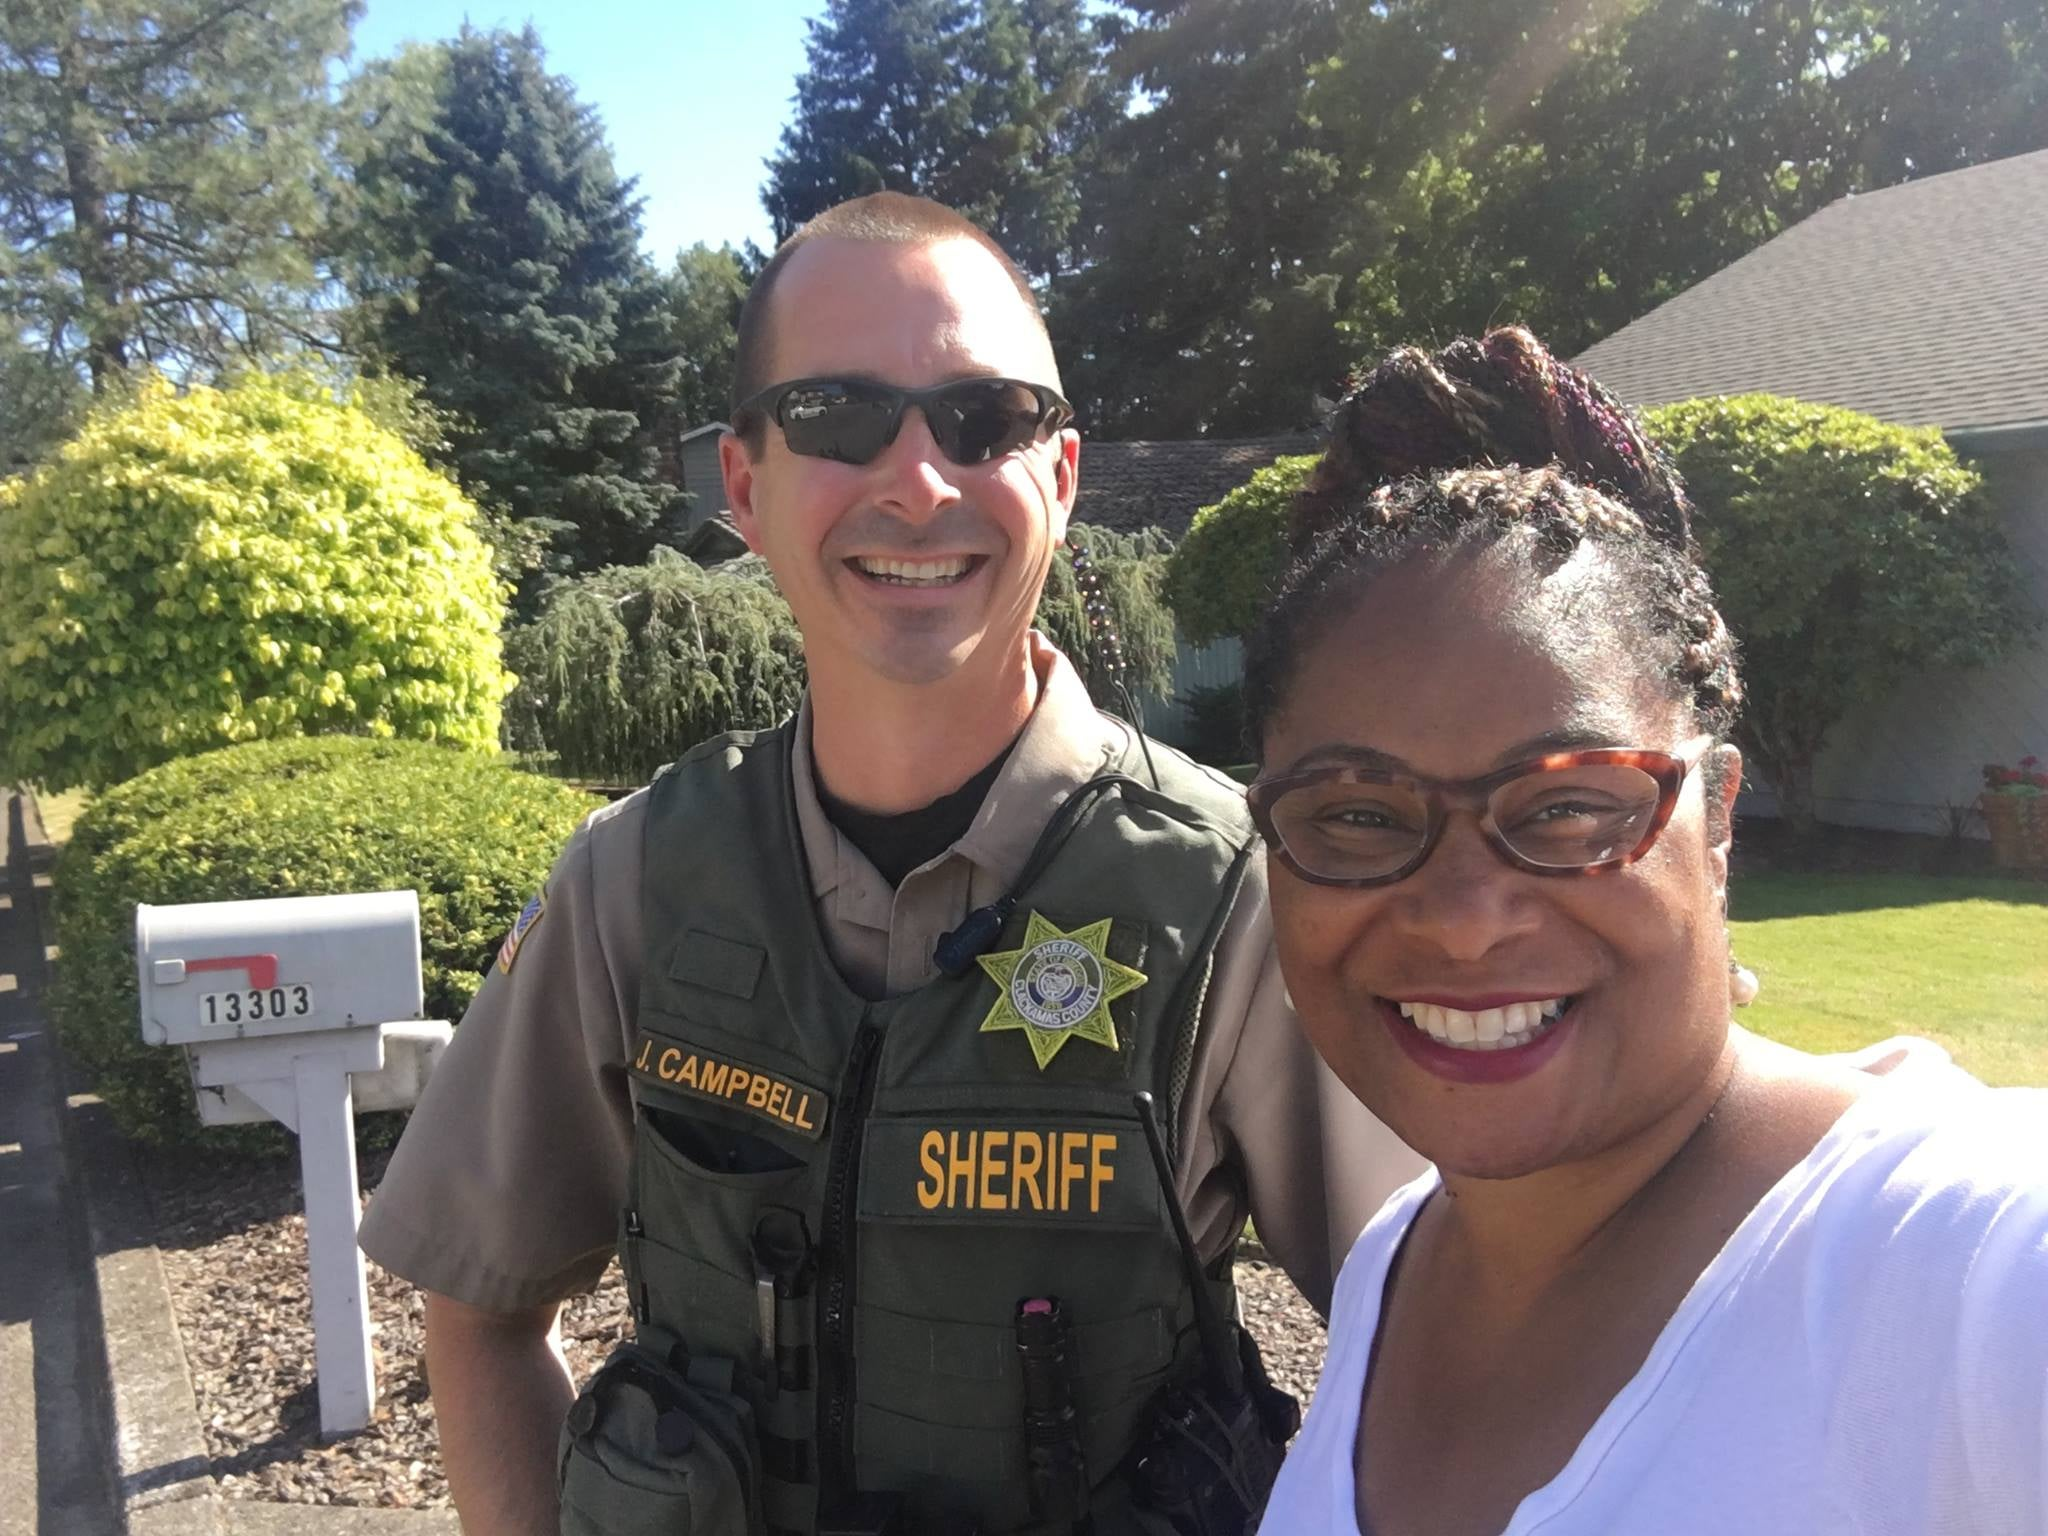 A uniformed police officer bearing the name tag J. Campbell, smiling next to Janelle Bynum in front of a house.